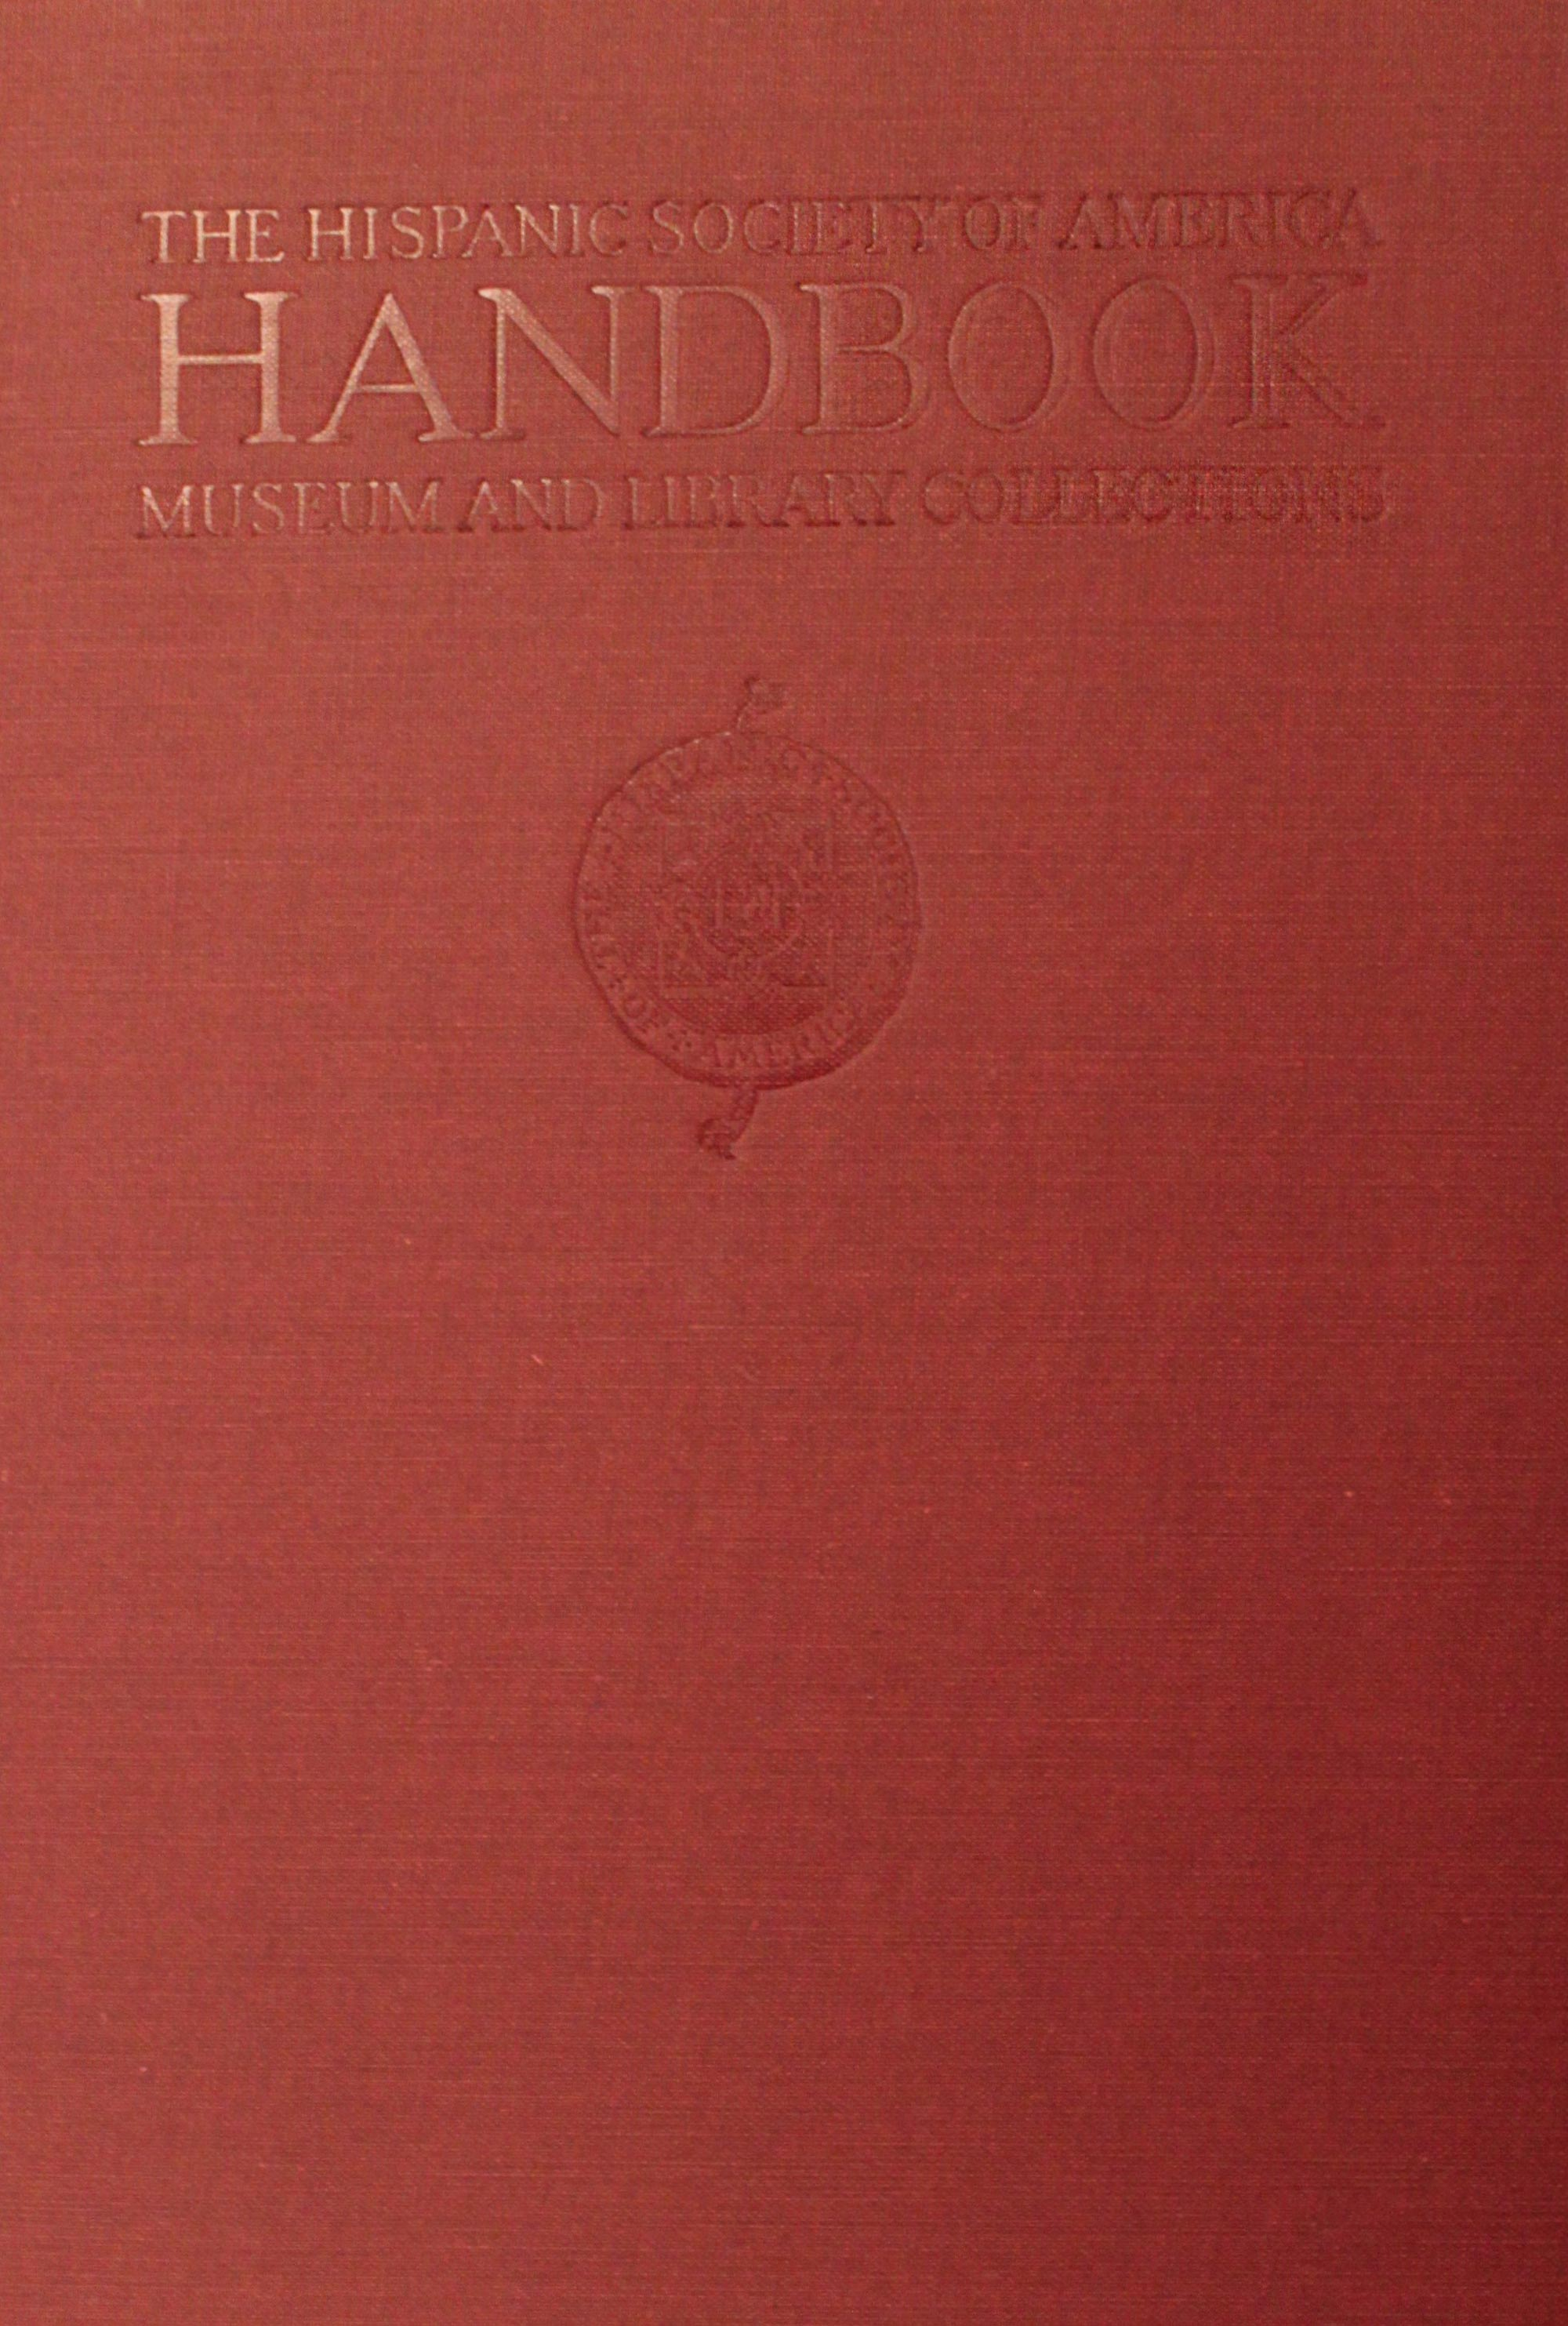 The_hispanic_society_of_America_handbook